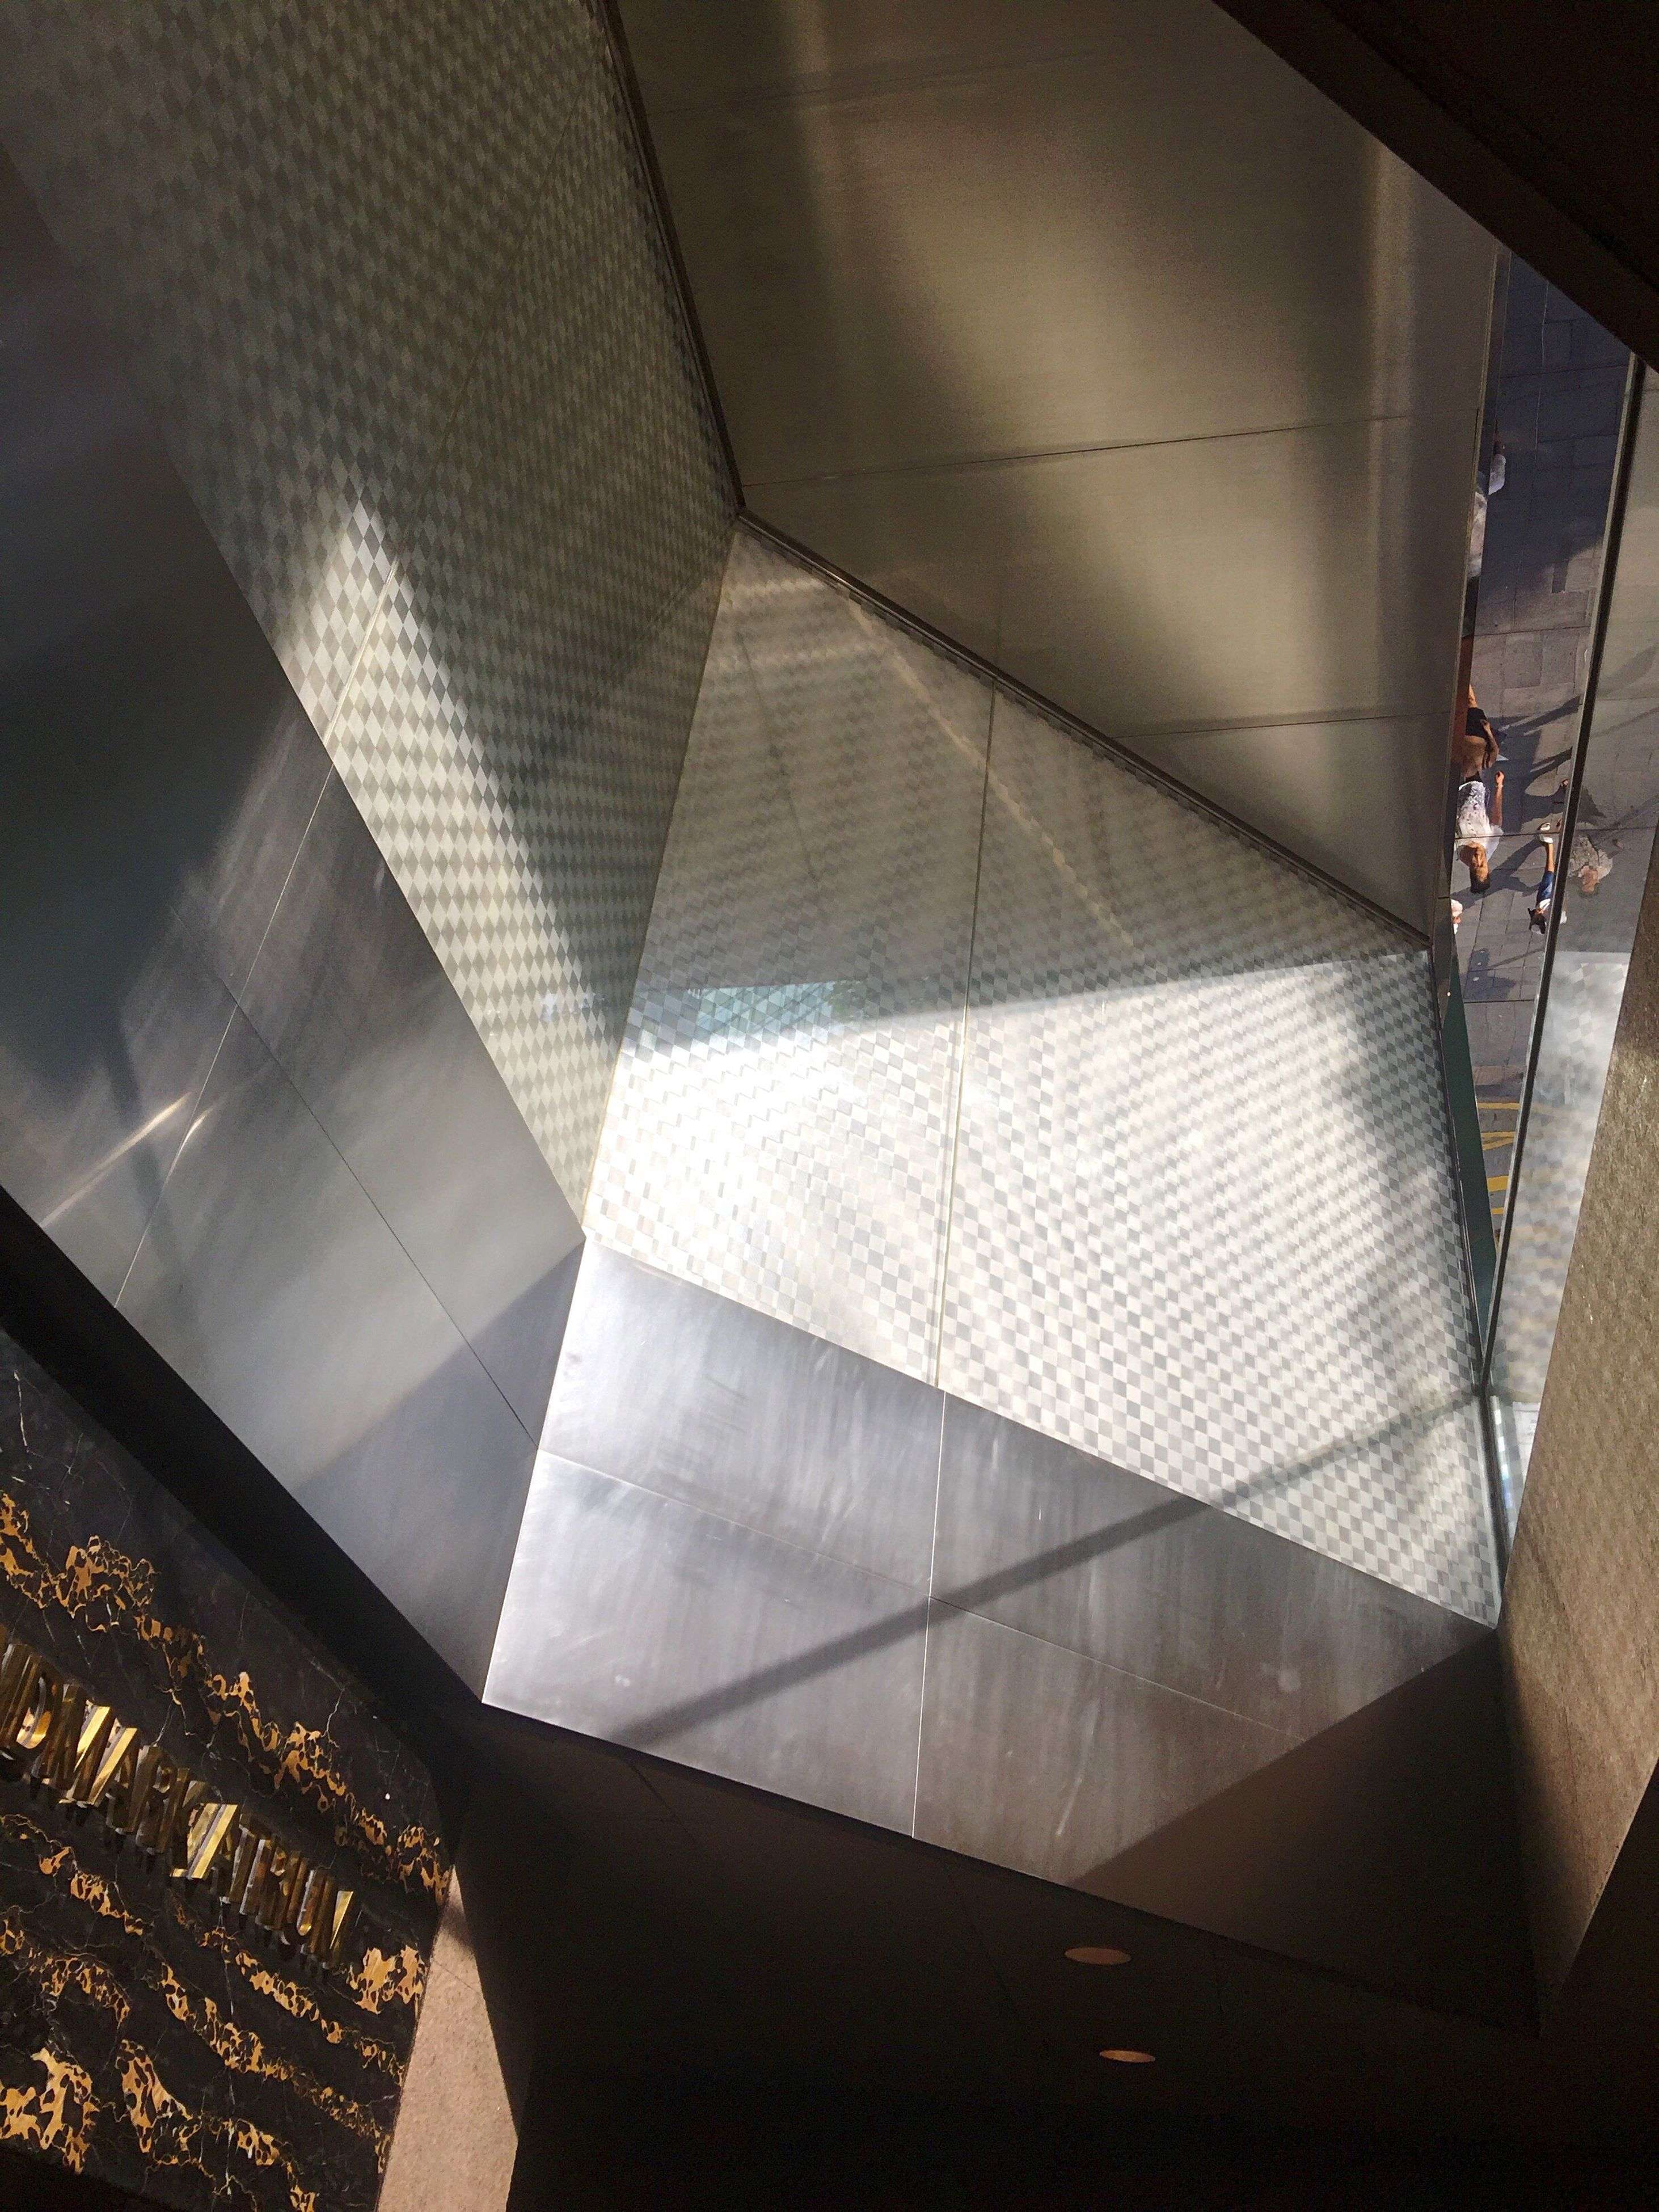 indoors, architecture, built structure, close-up, ceiling, geometric shape, architectural feature, no people, modern, angle, architectural design